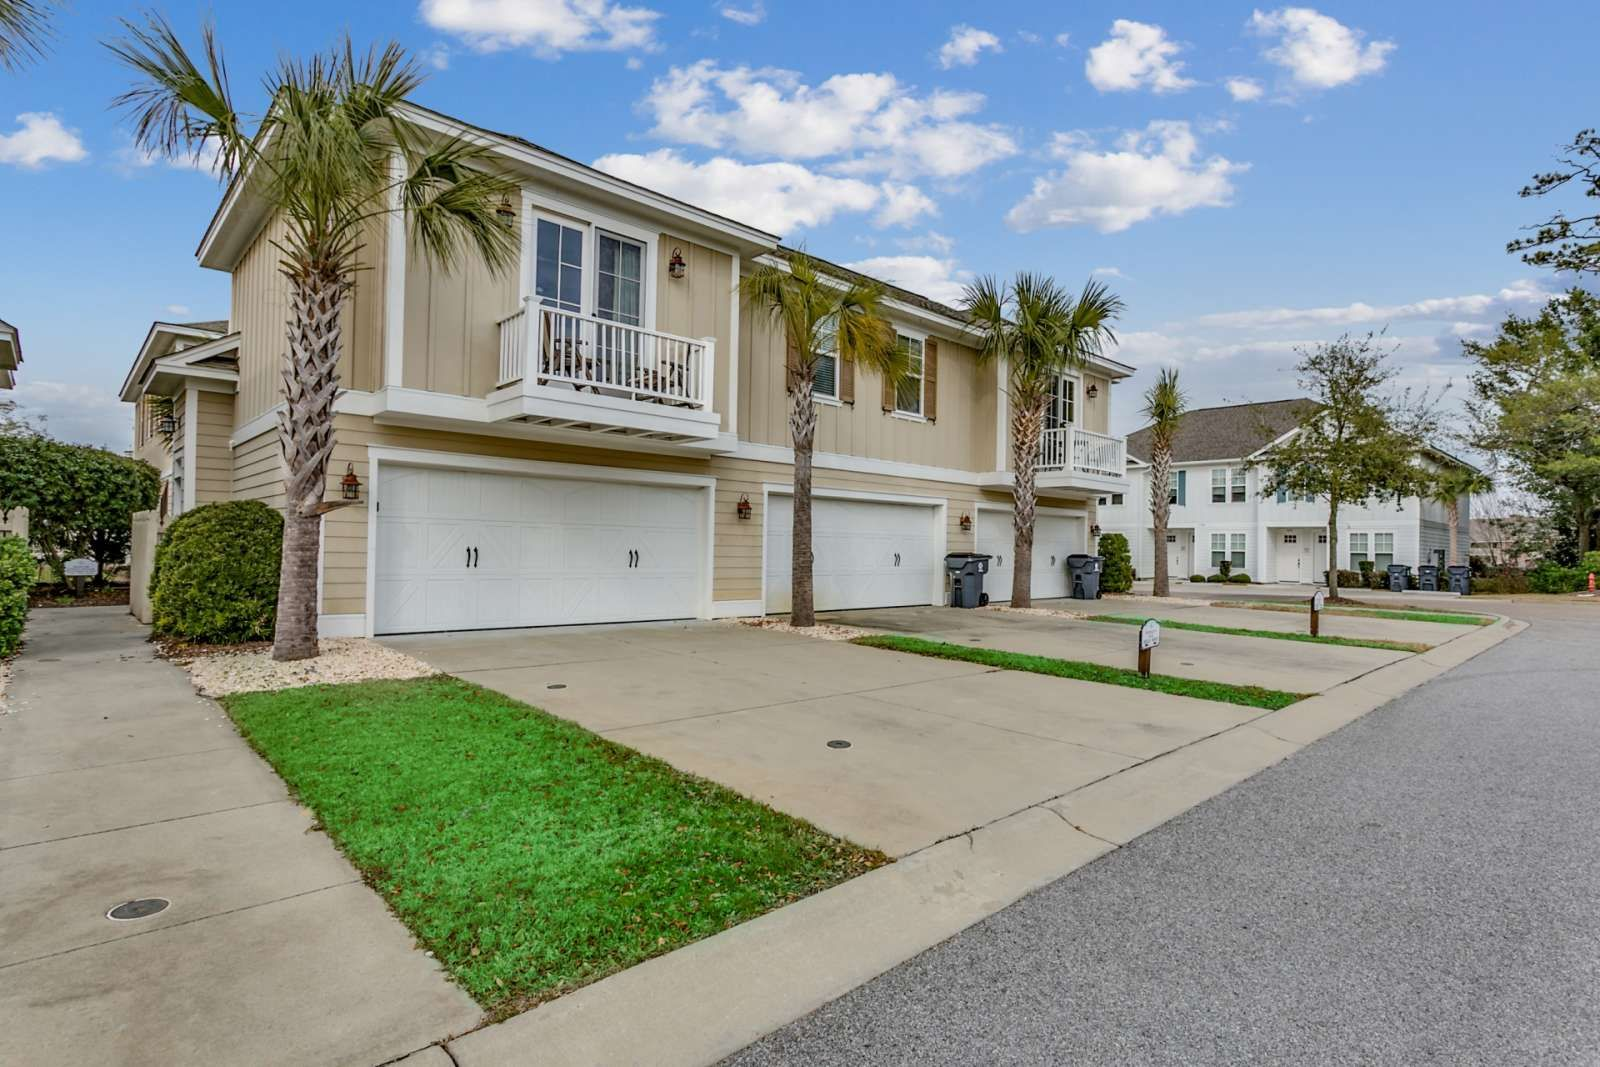 Pin on North Myrtle Beach Vacation Ideas and Rentals